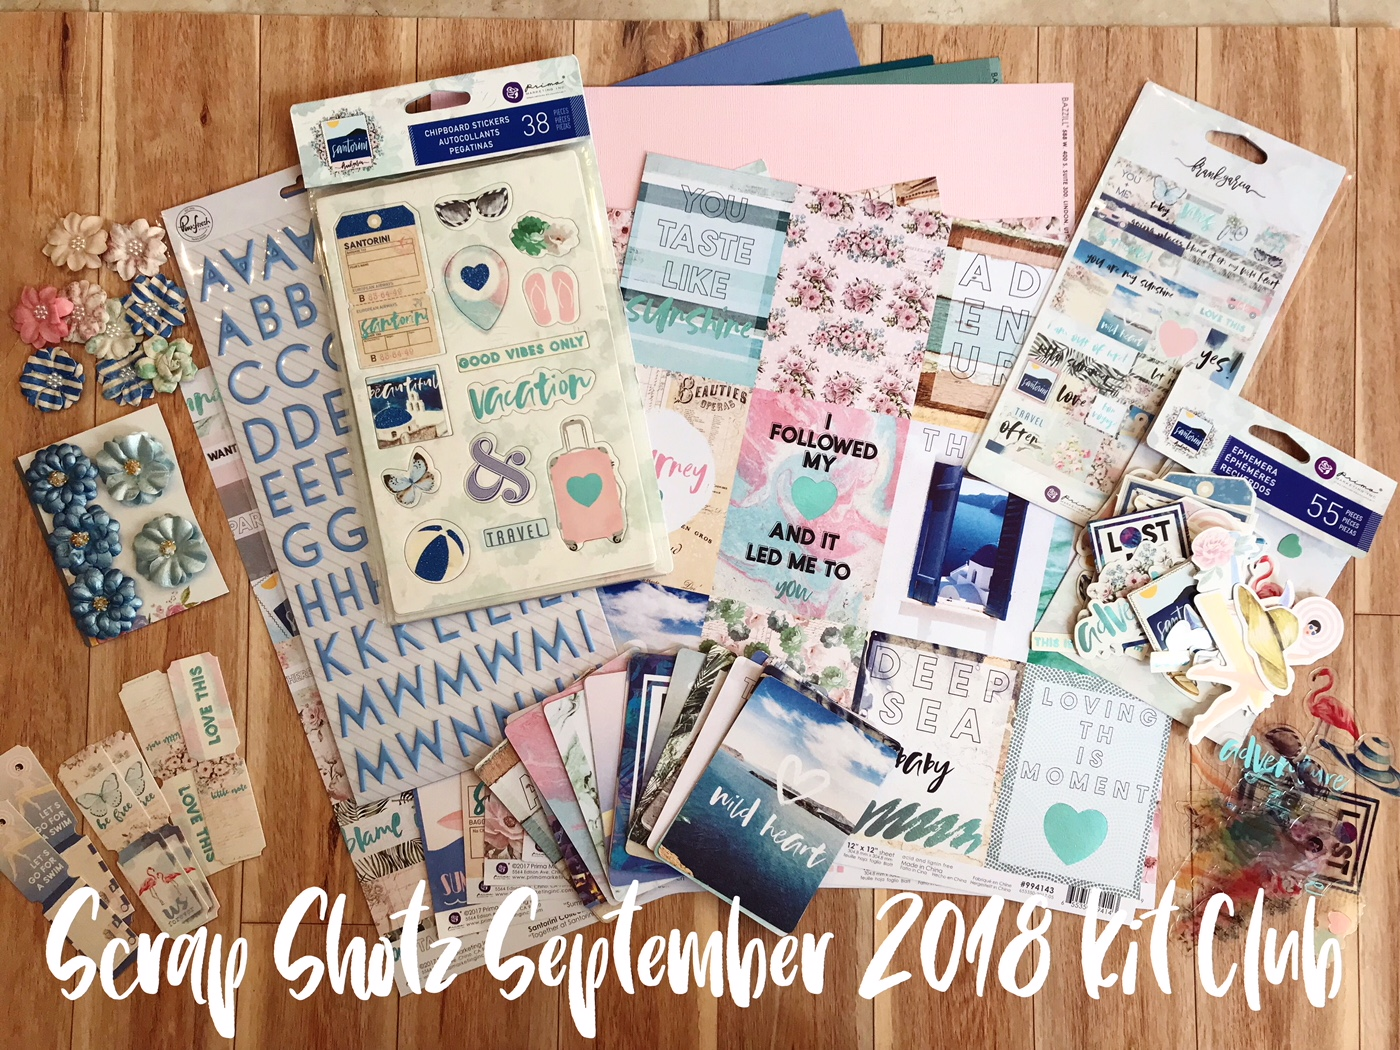 Scrap Shotz Kit Club!